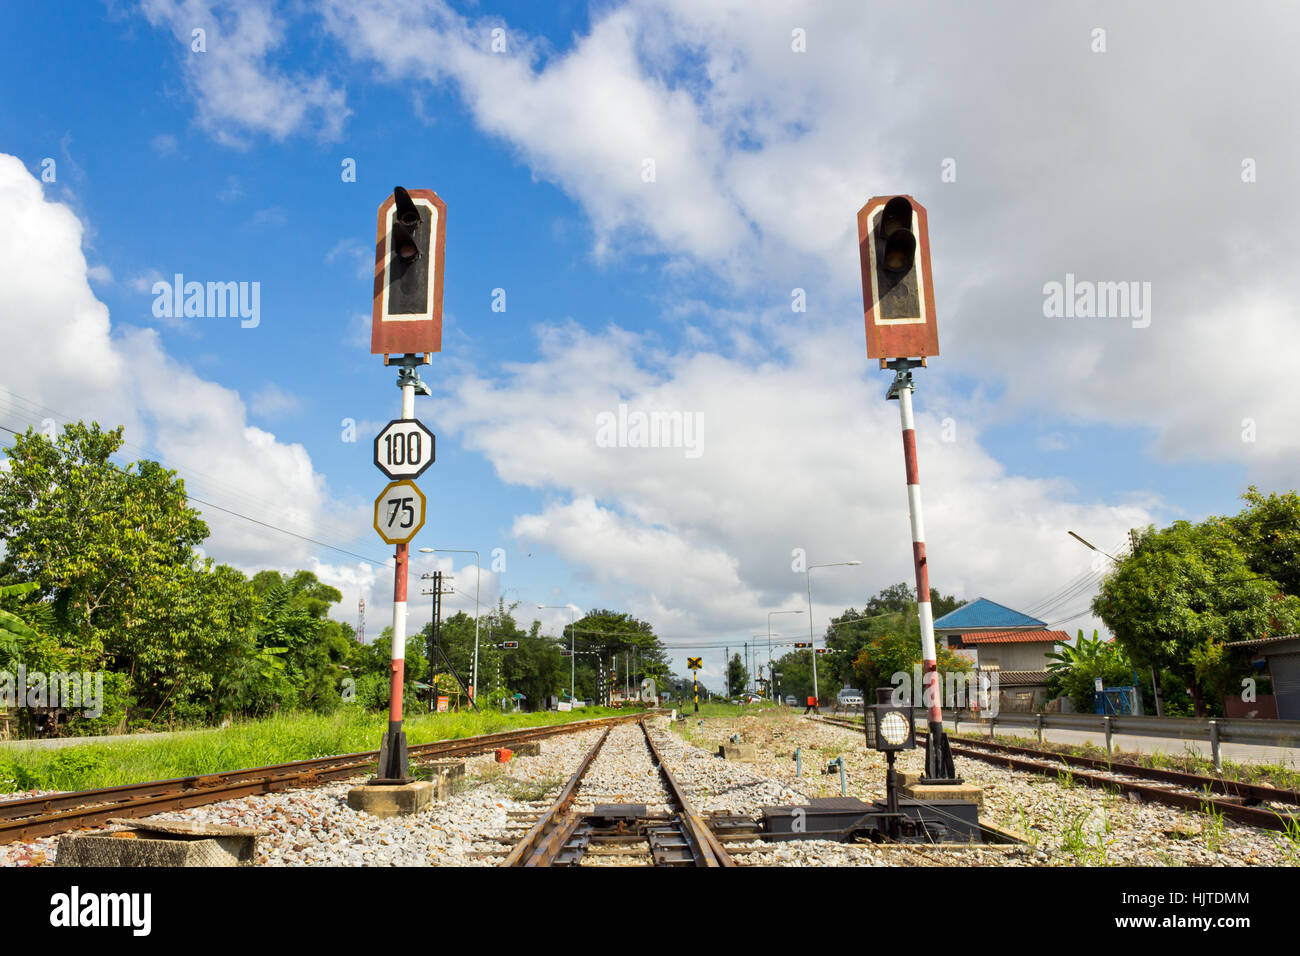 railway, locomotive, train, engine, rolling stock, vehicle, means of travel, Stock Photo